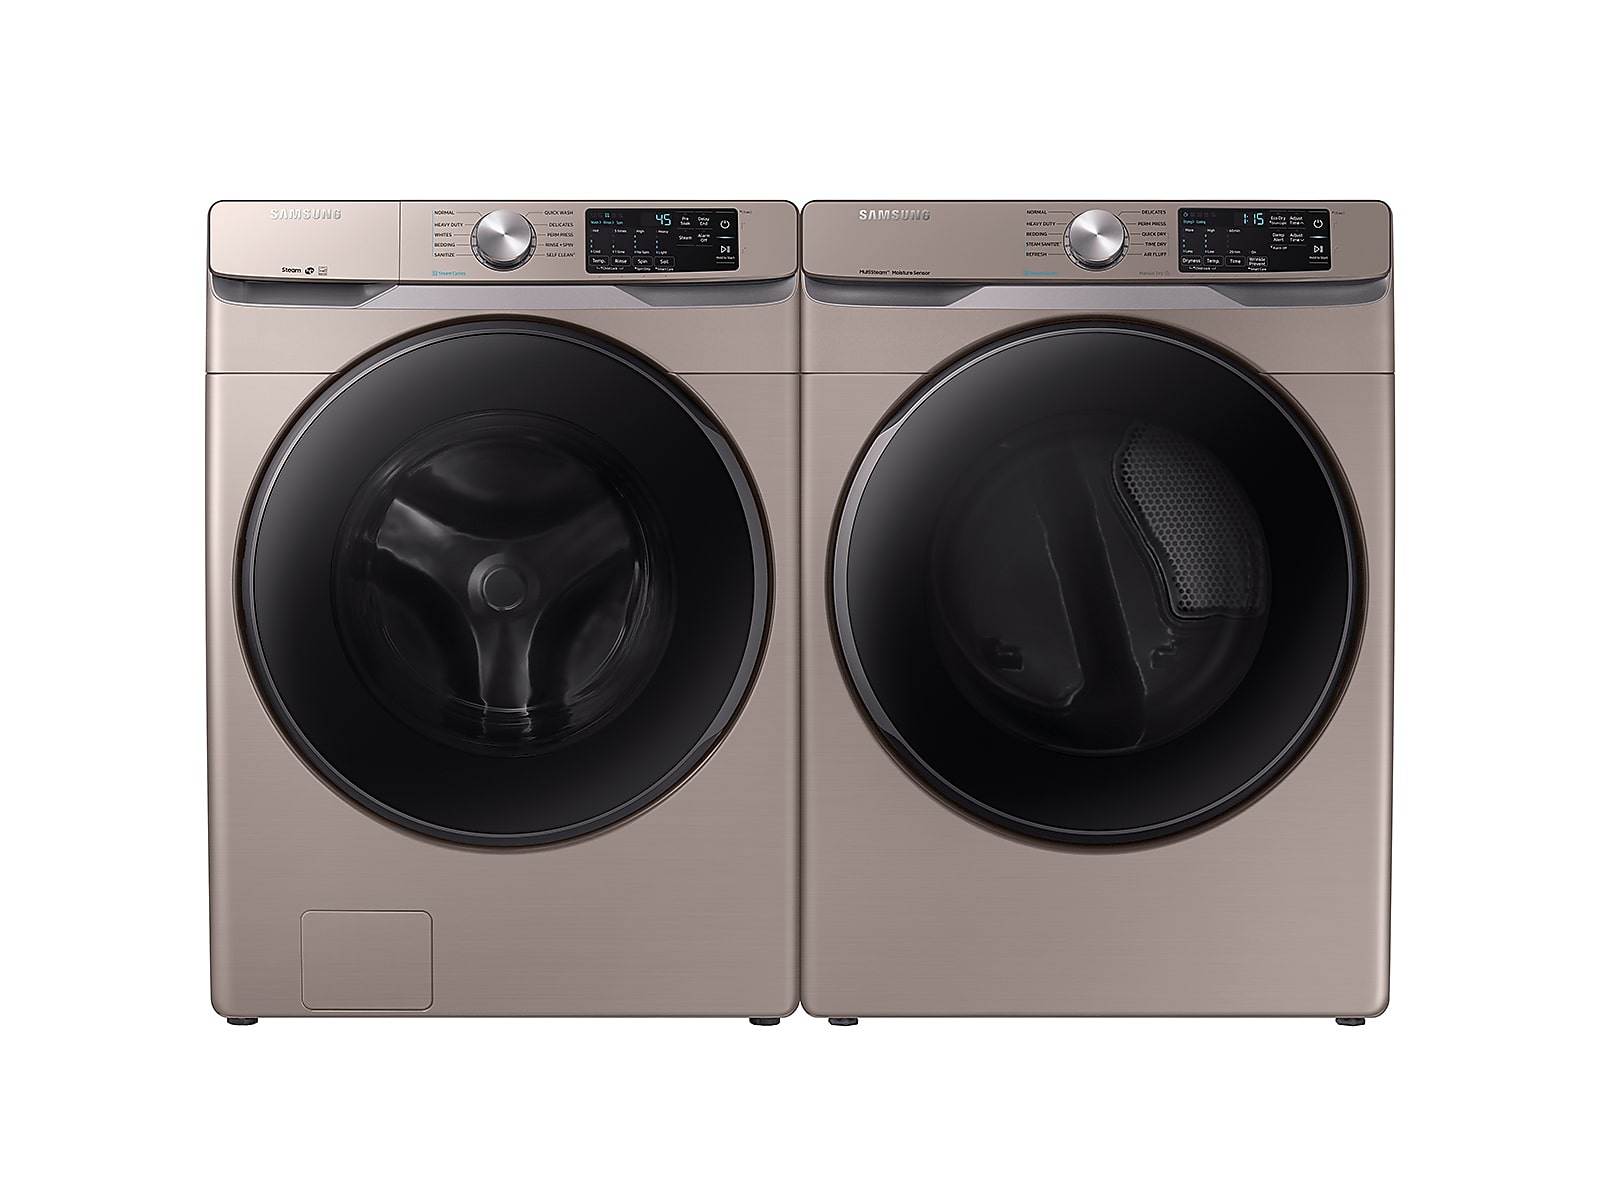 Samsung coupon: Samsung Front Load Washer & Dryer Set with Steam and Steam Sanitize+ in Champagne(BNDL-1579764797389)